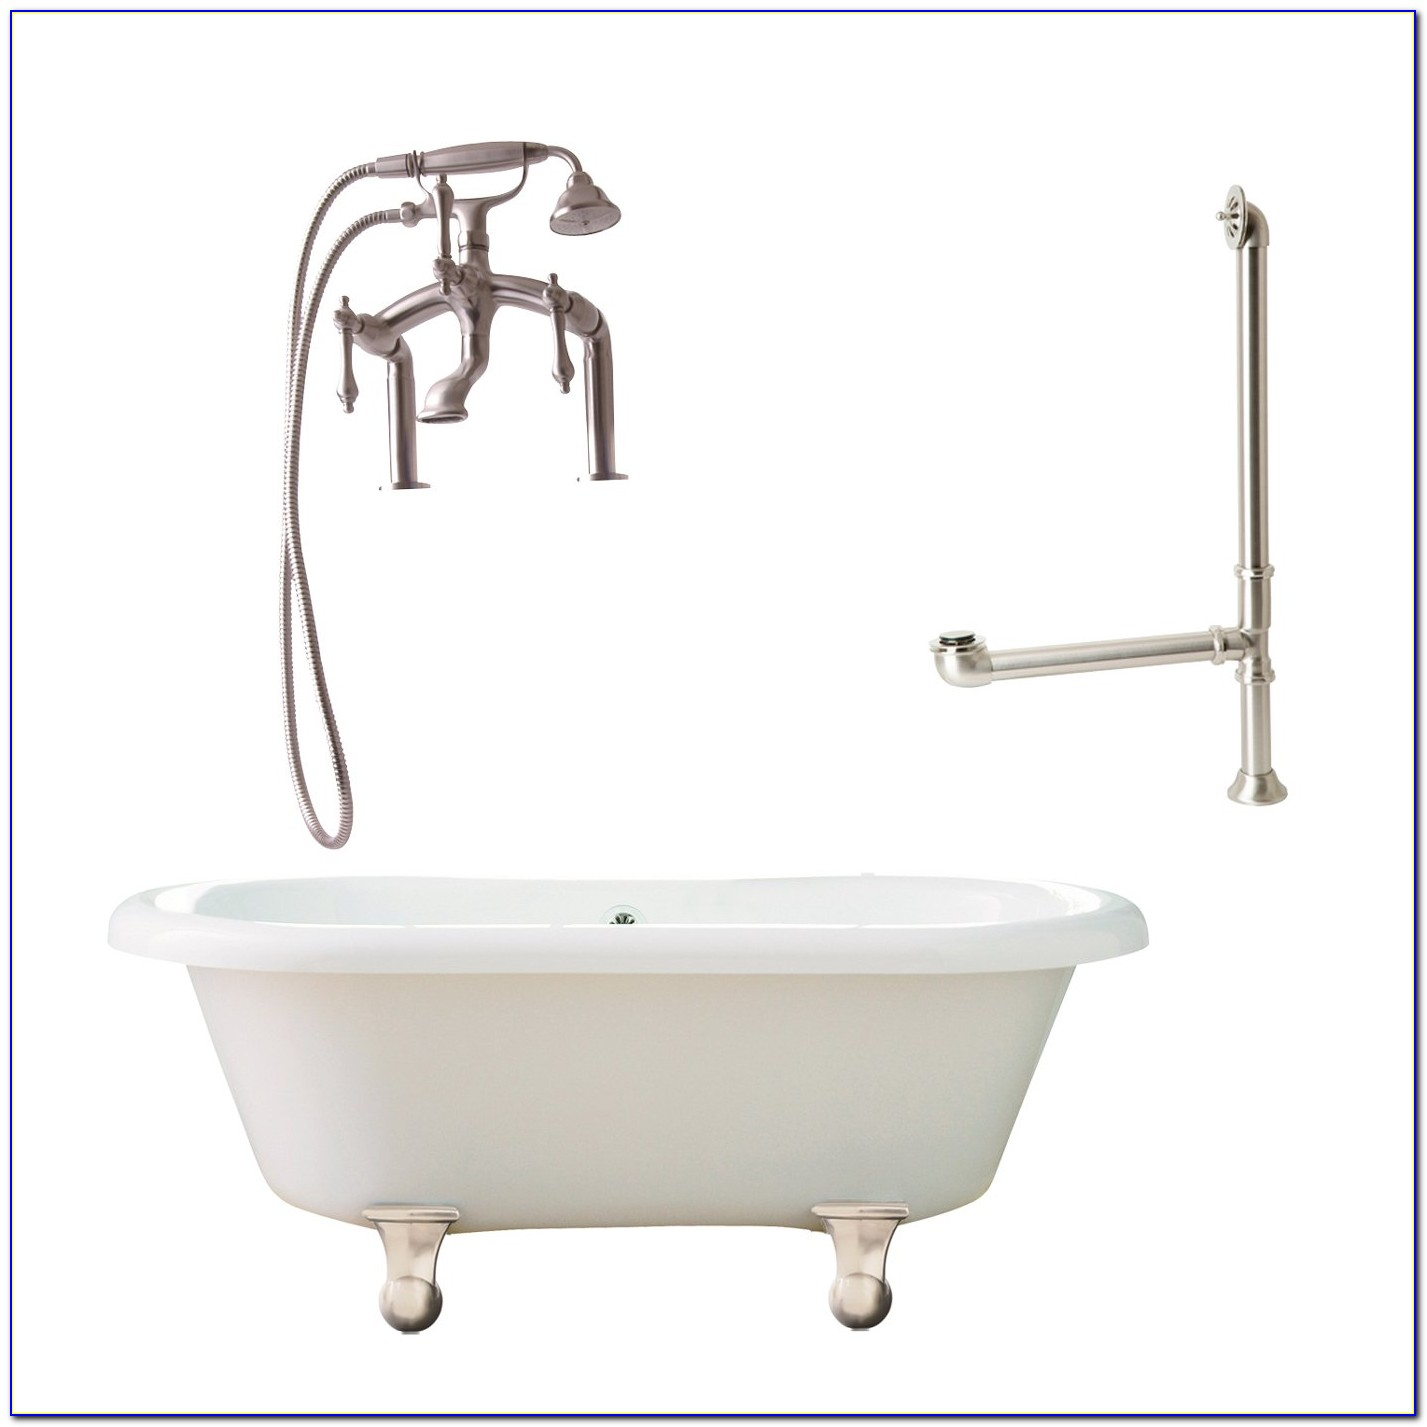 Freestanding Tub With Faucet Included